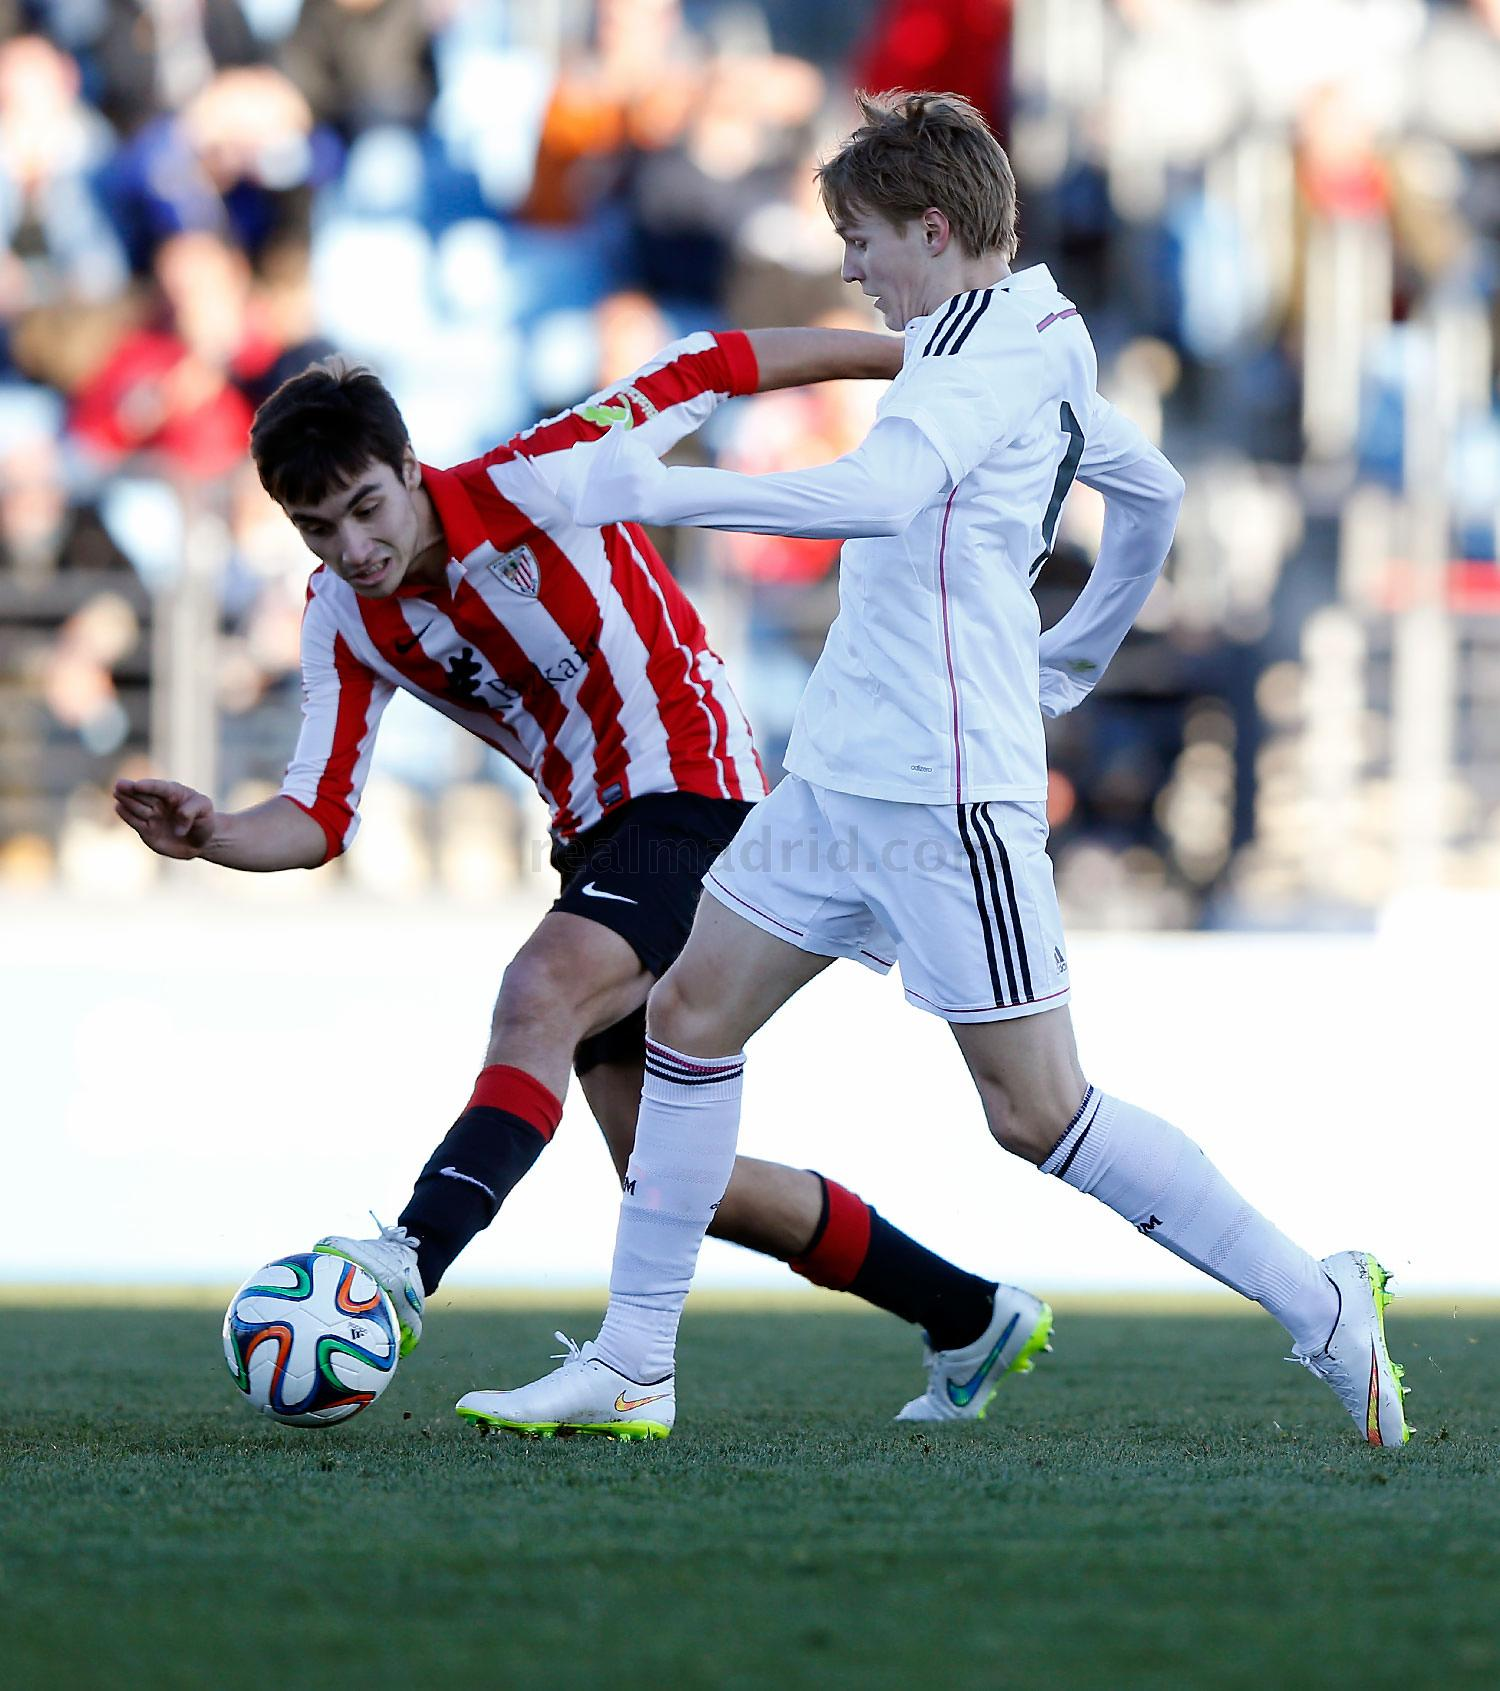 Real Madrid - Real Madrid Castilla - Athletic Club B - 08-02-2015